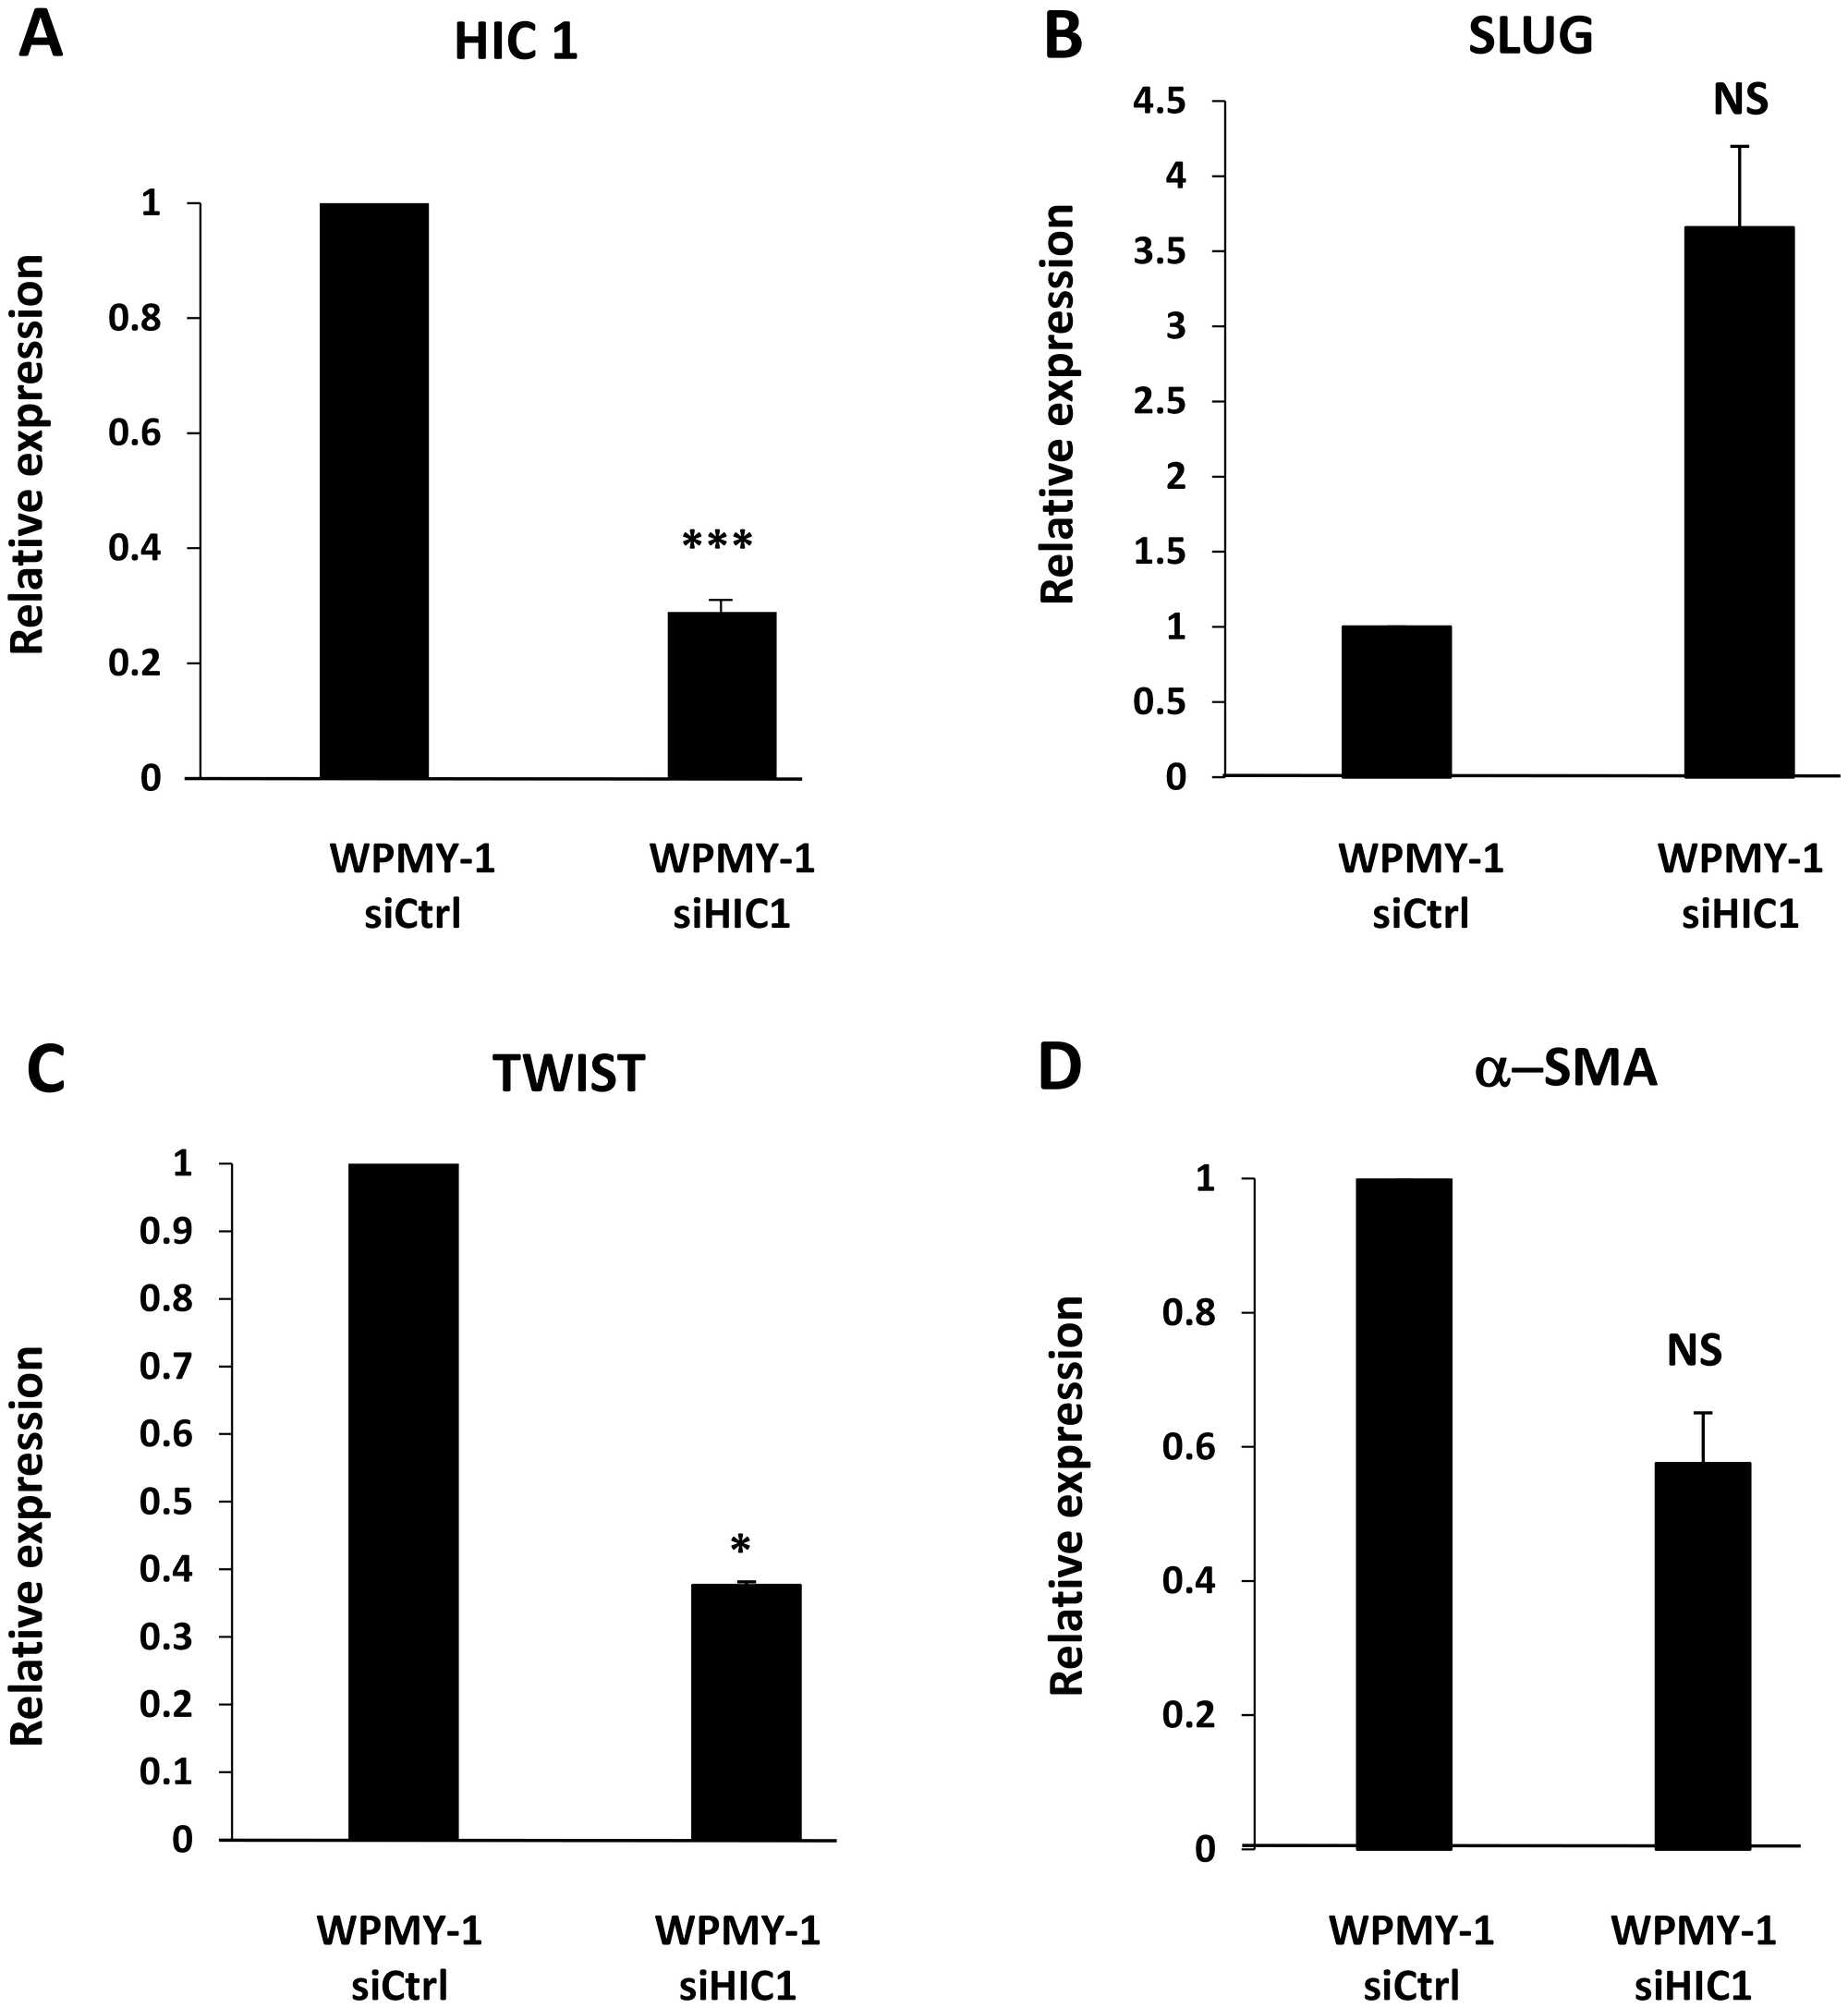 HIC1 regulates the expression of the EMT-inducing transcription factor SLUG in the myofibroblastic cell line WPMY-1.